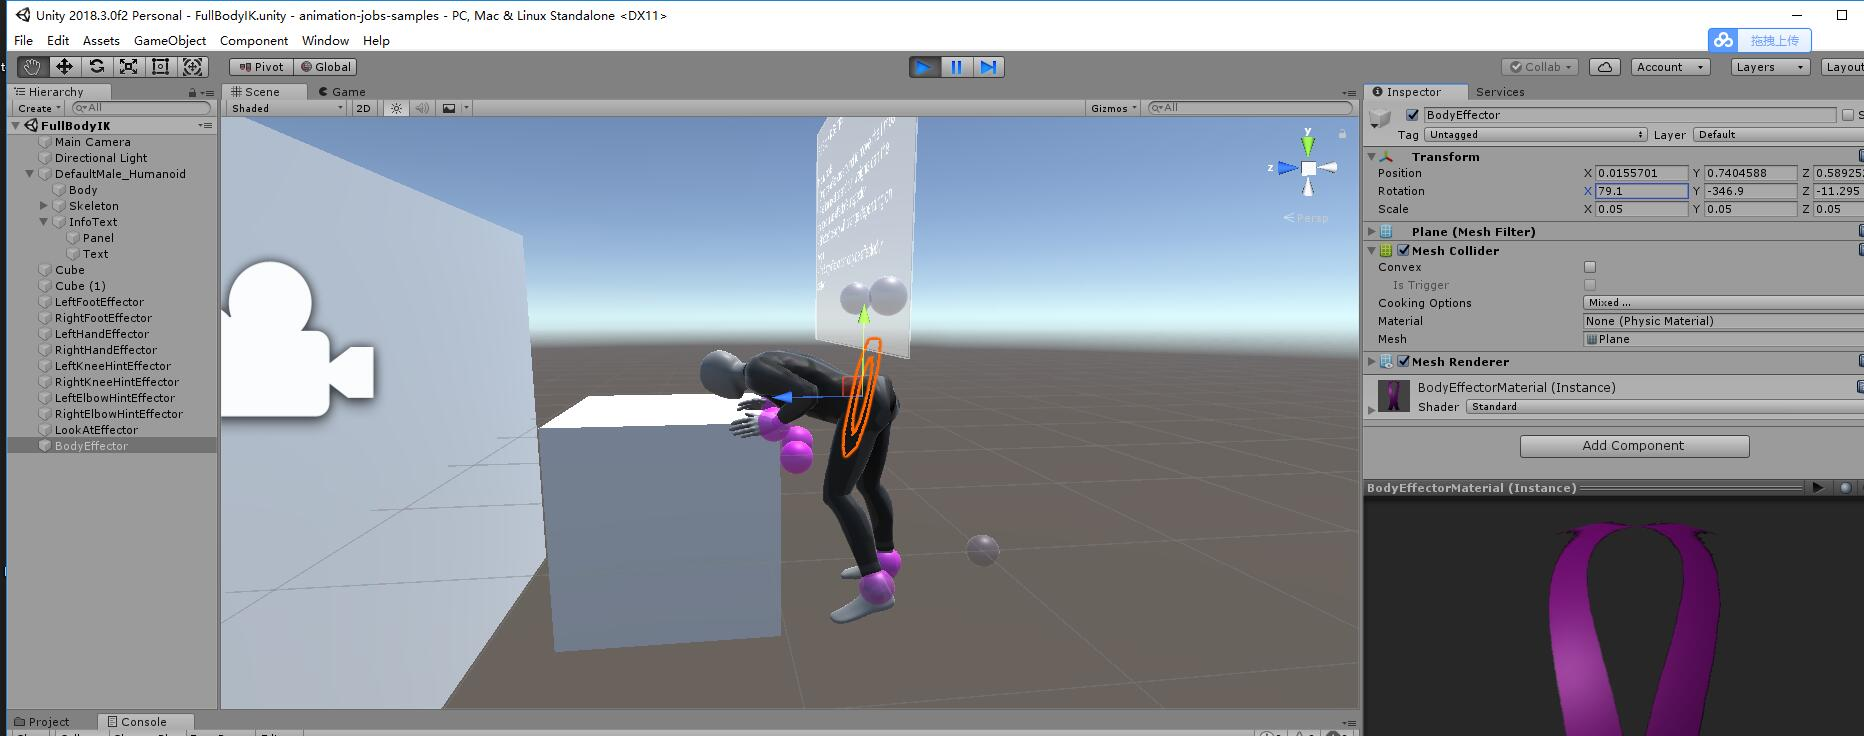 Resovled)How to make Squat pose with fullbodyik In animation